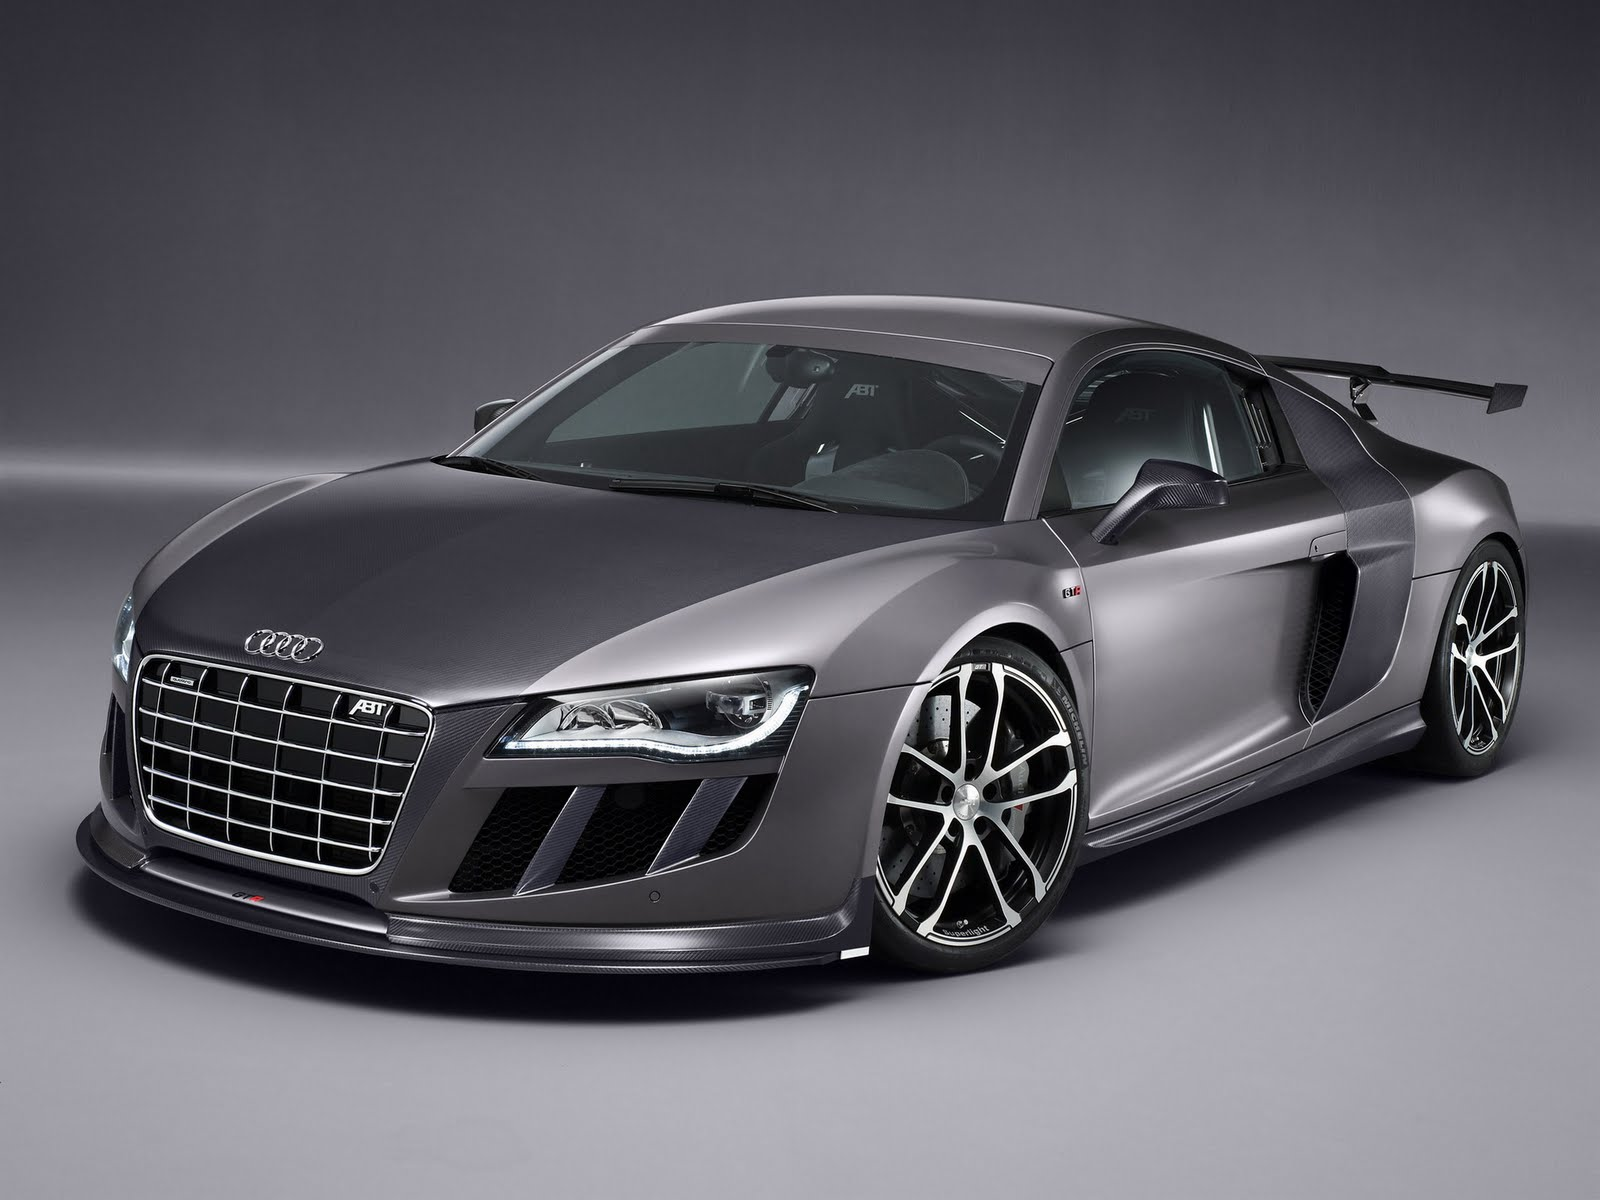 car au audi r8 tuning by abt used and new cars from. Black Bedroom Furniture Sets. Home Design Ideas